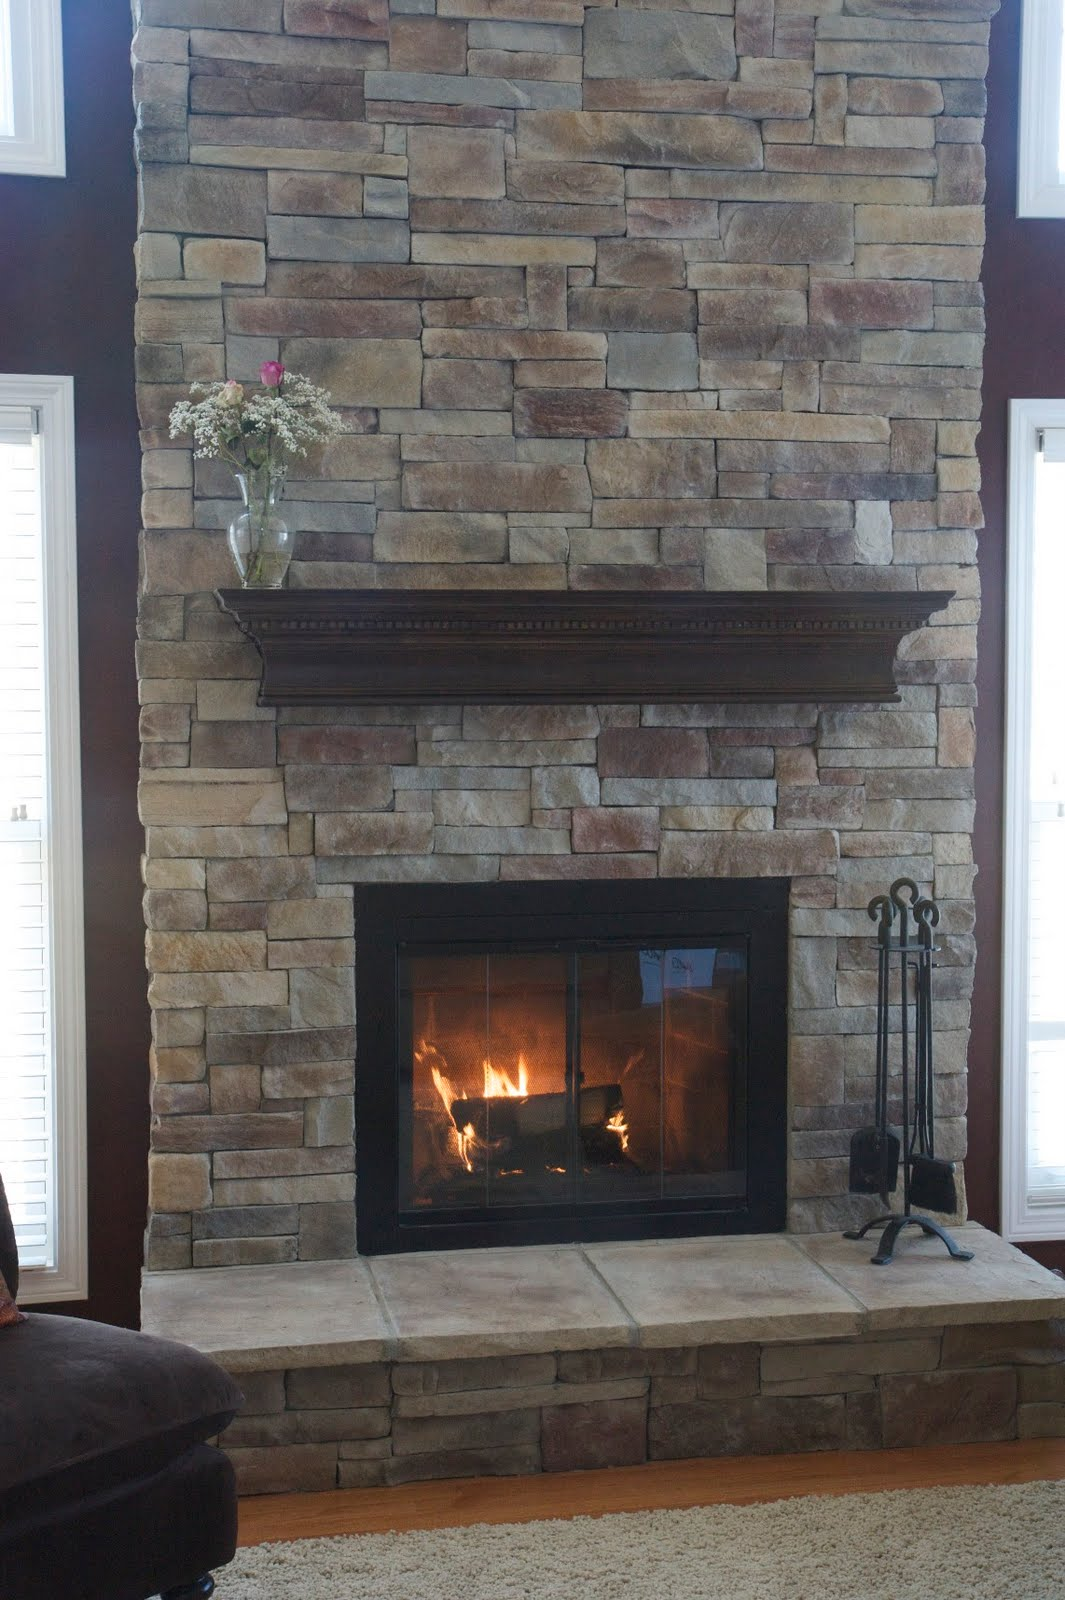 north star stone stone fireplaces stone exteriors did you know you